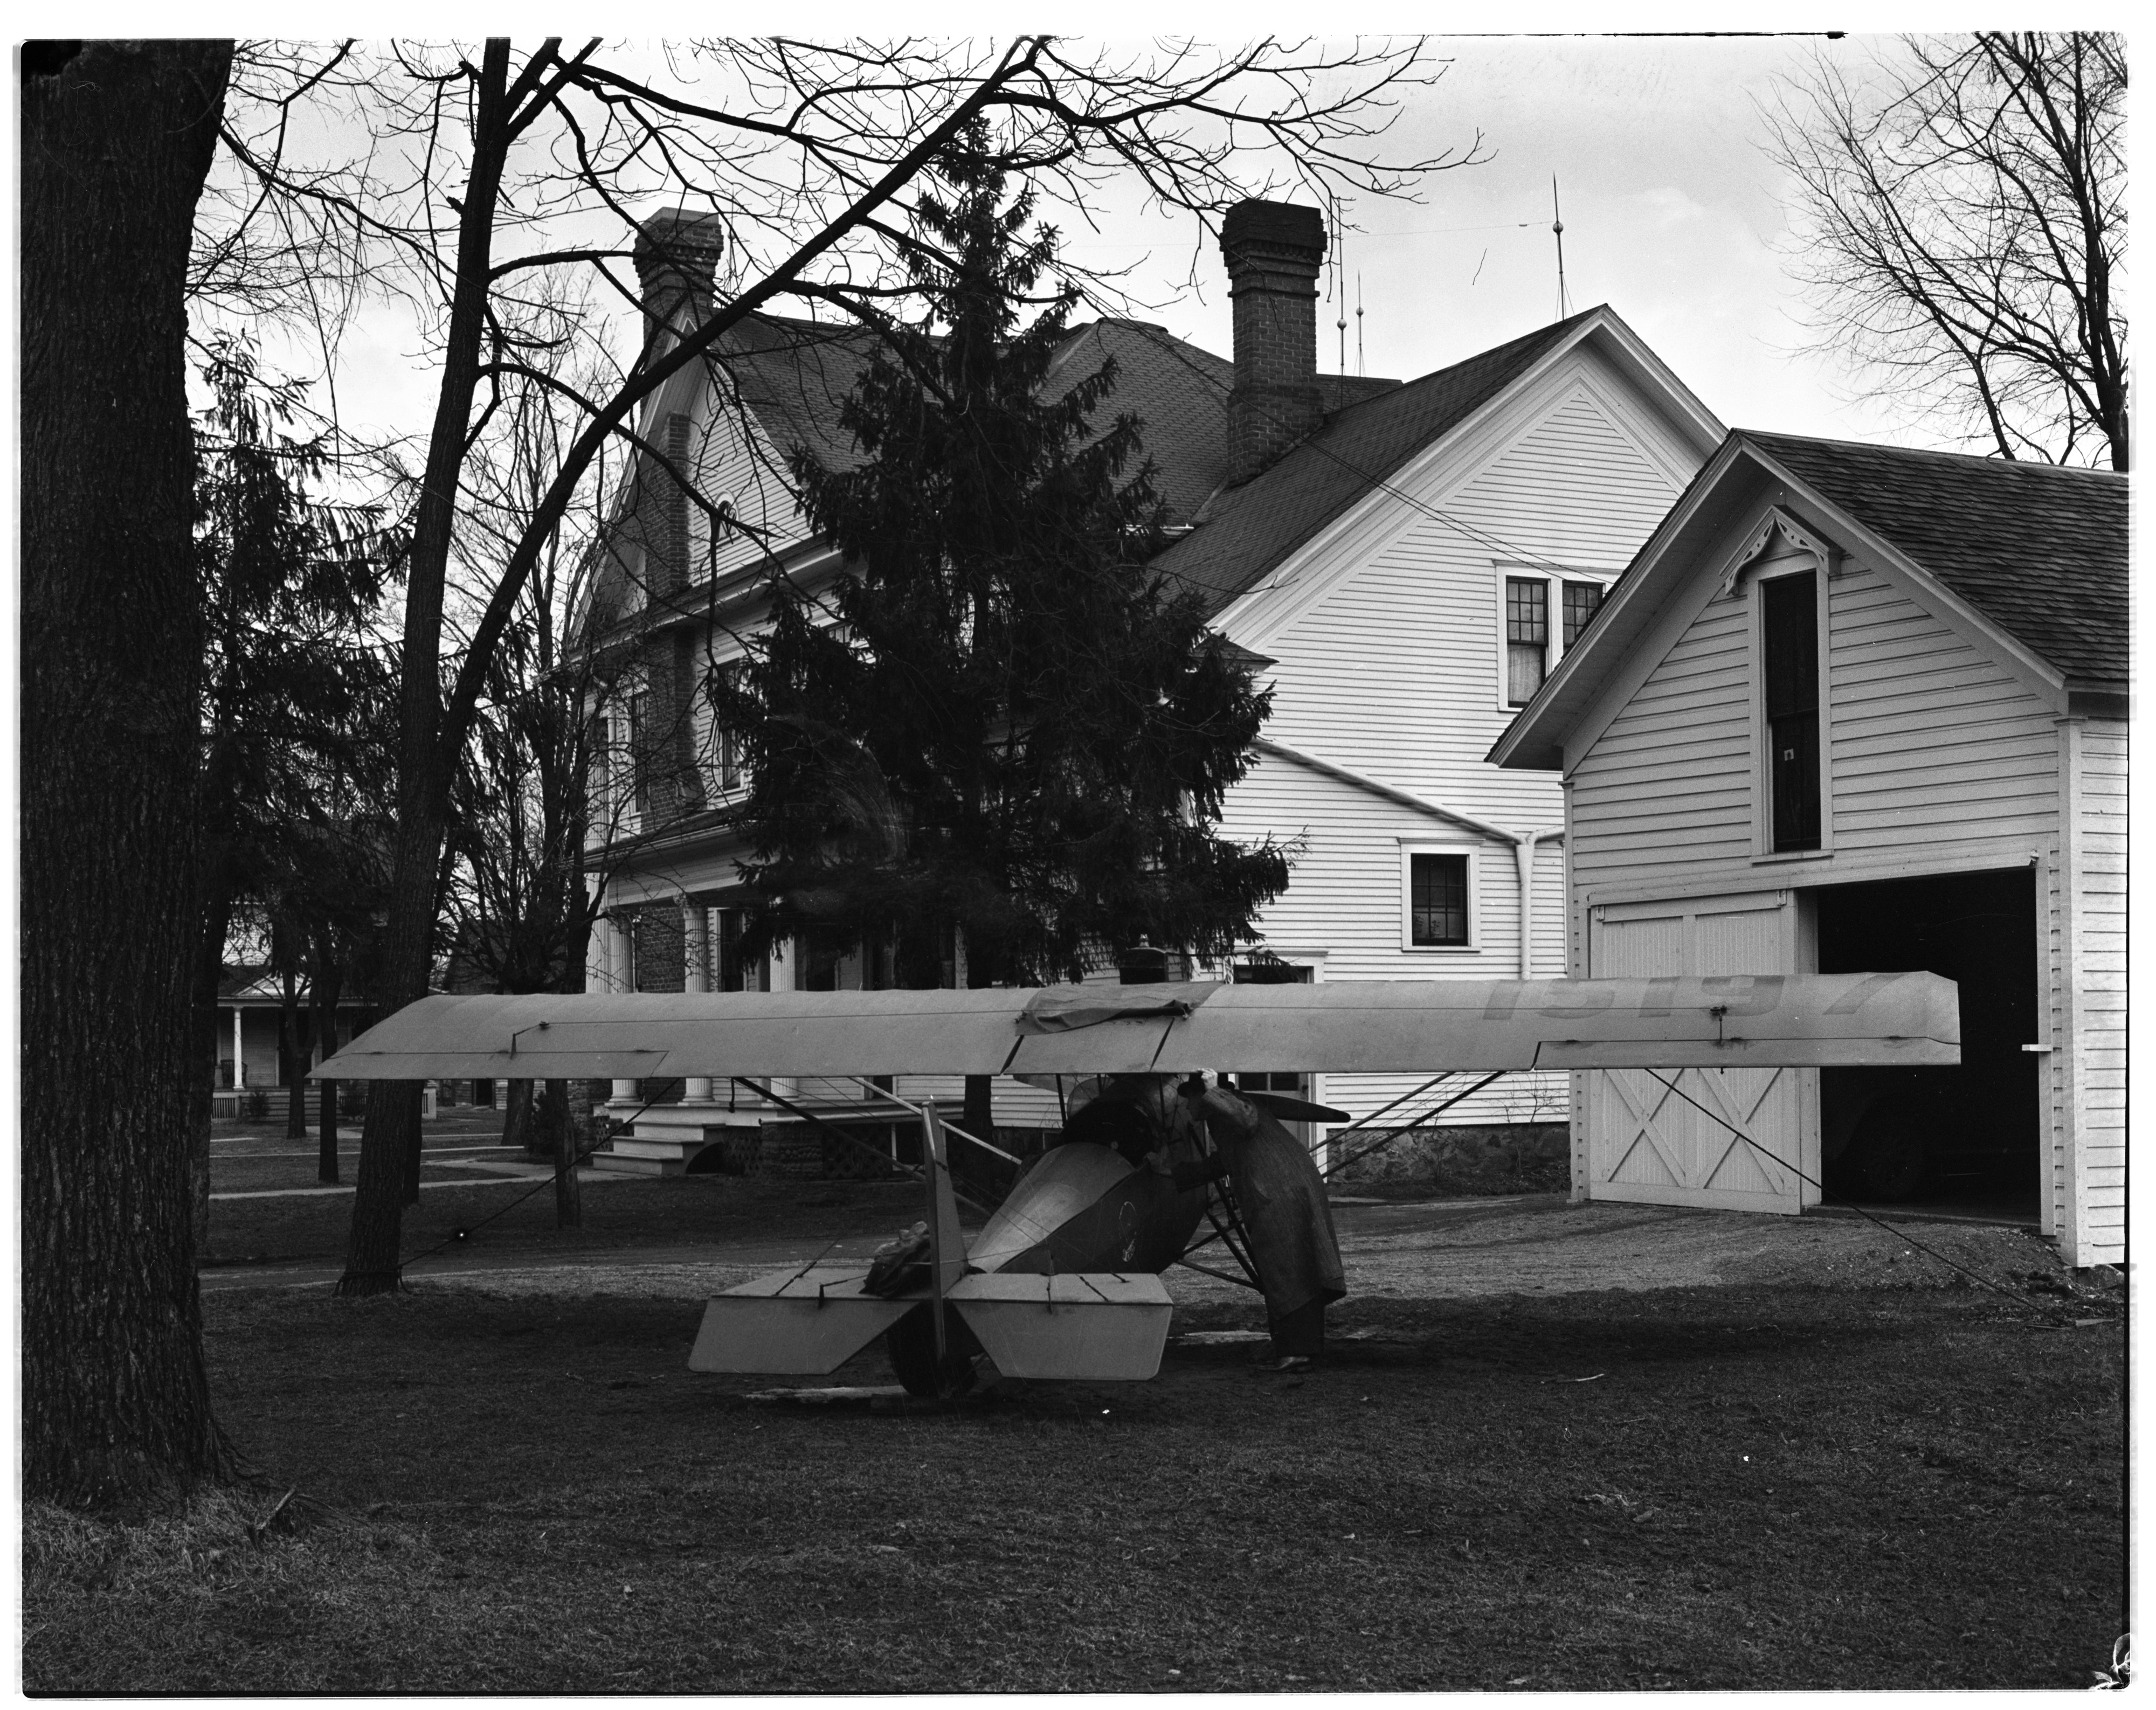 A Homemade Airplane at a Brighton Home image